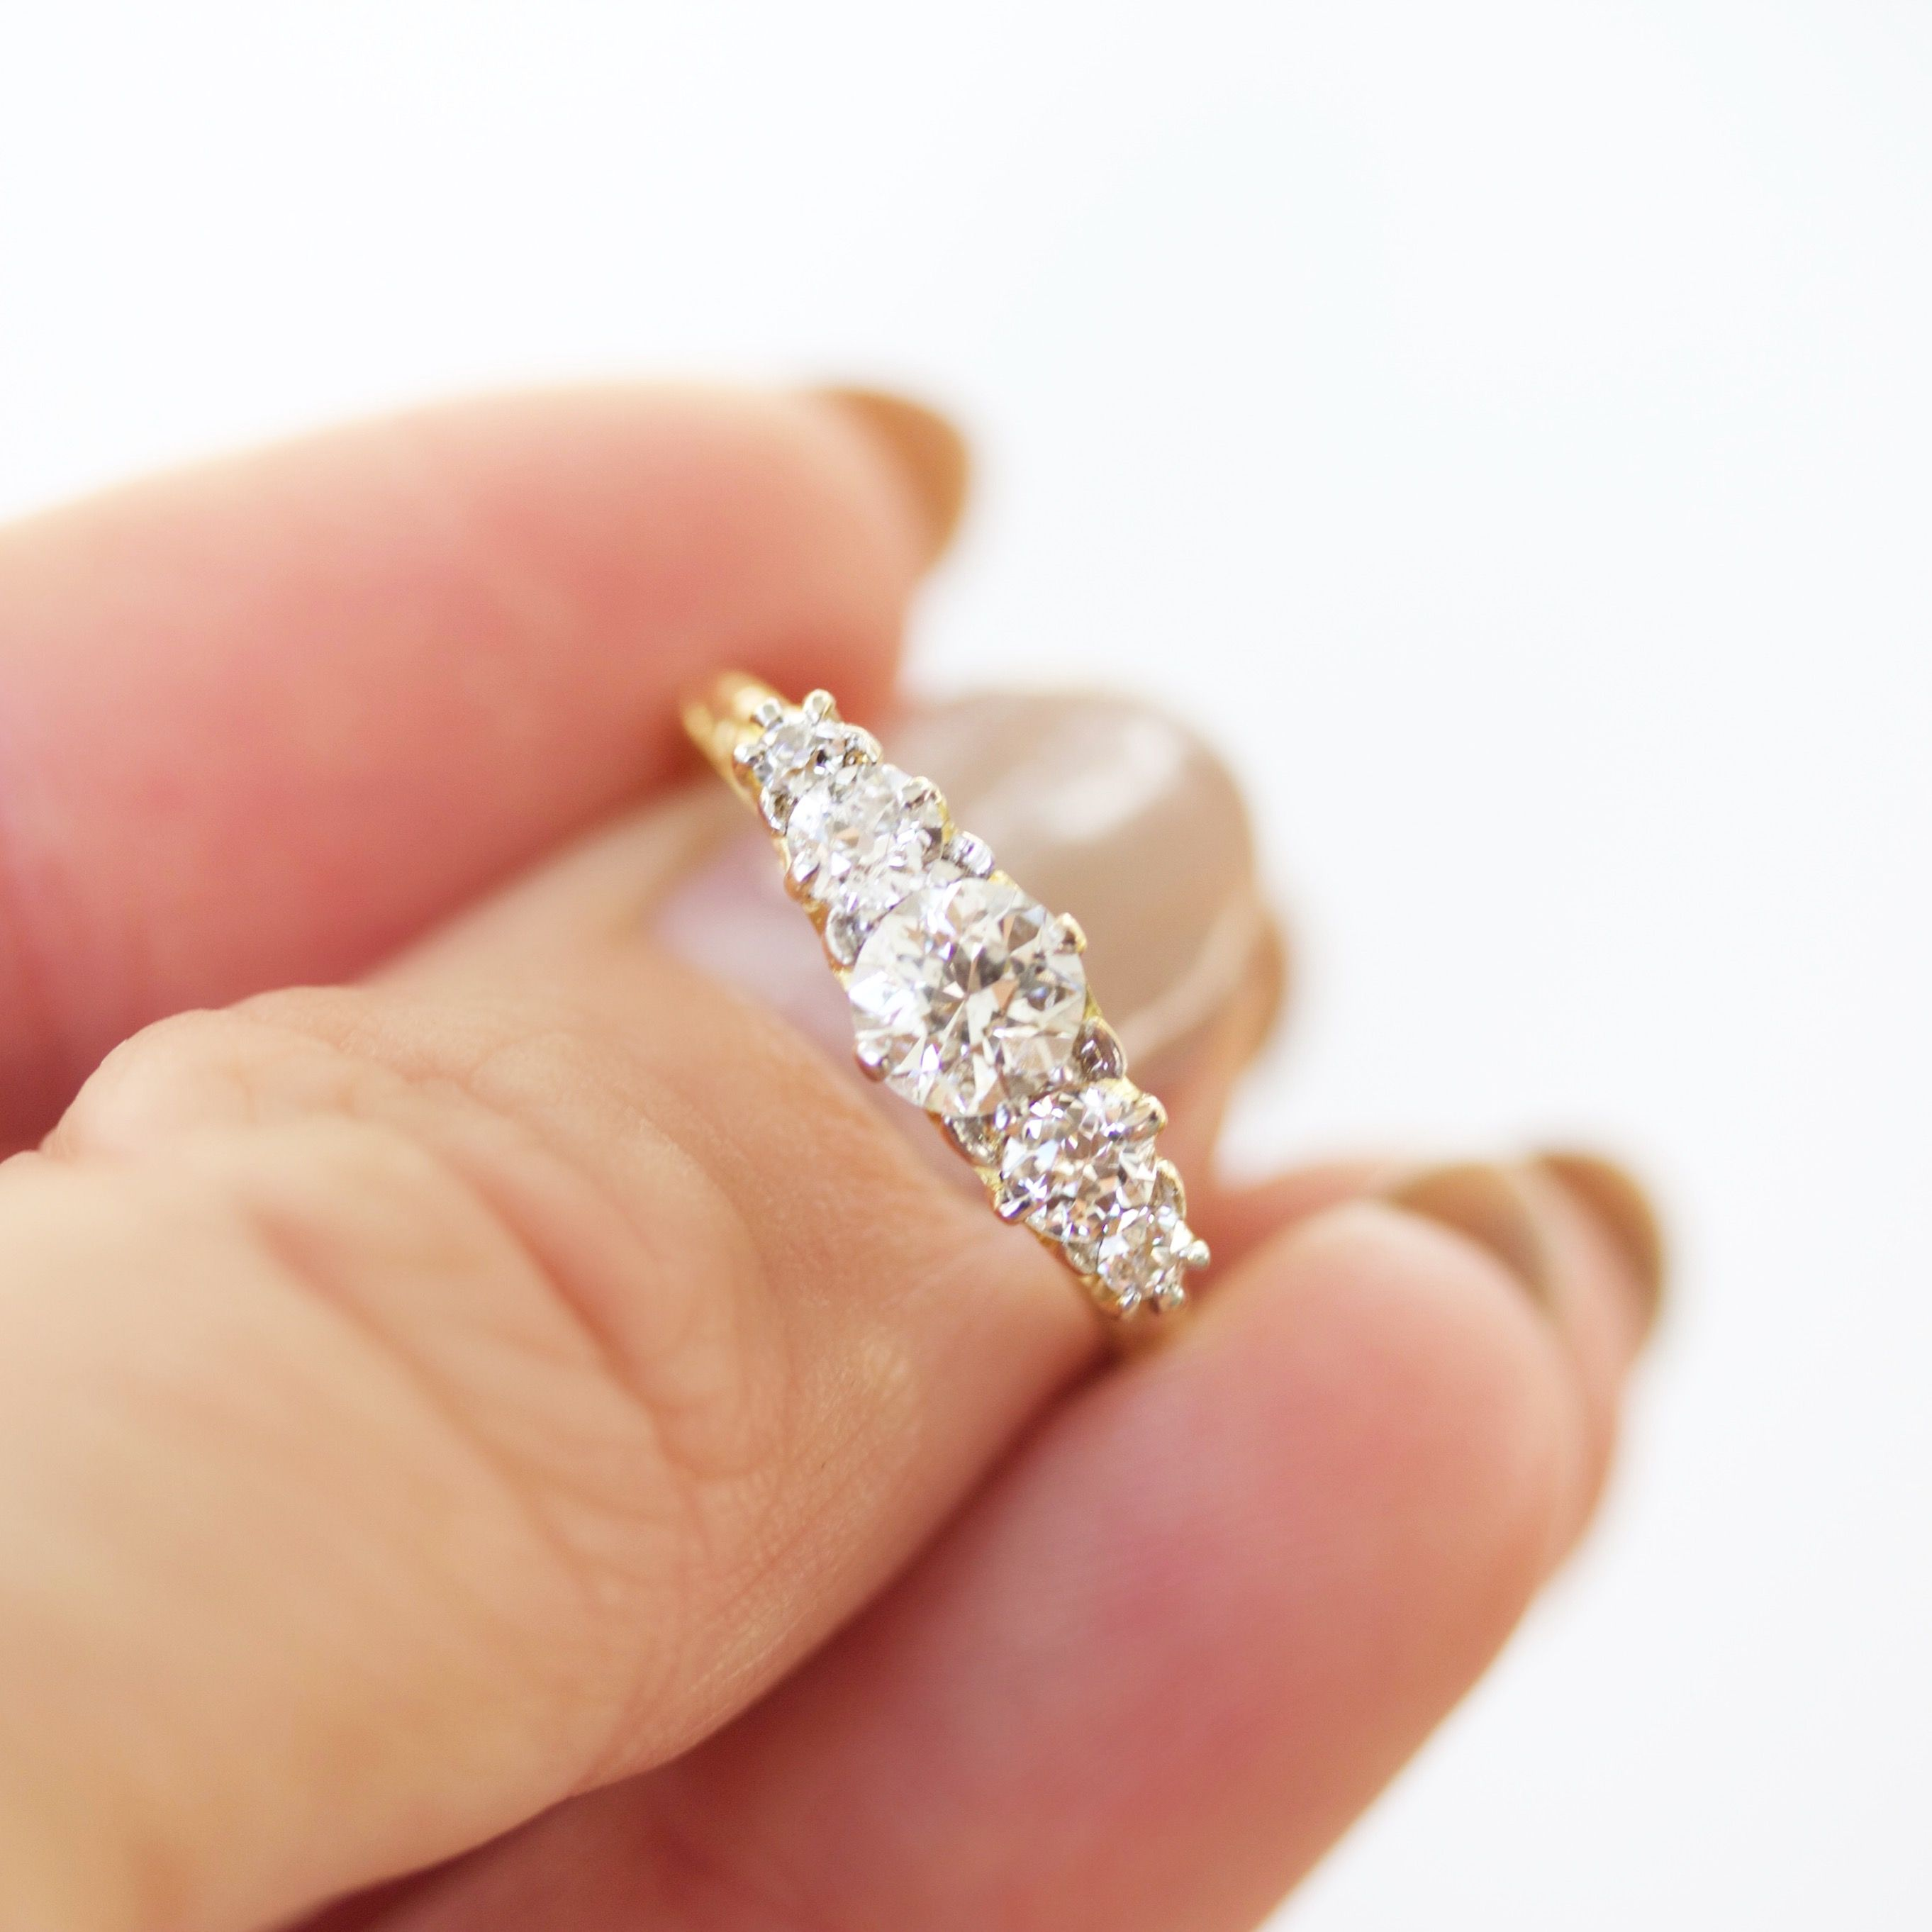 tokyo in buy gem rings blog could travel to engagement where japan you